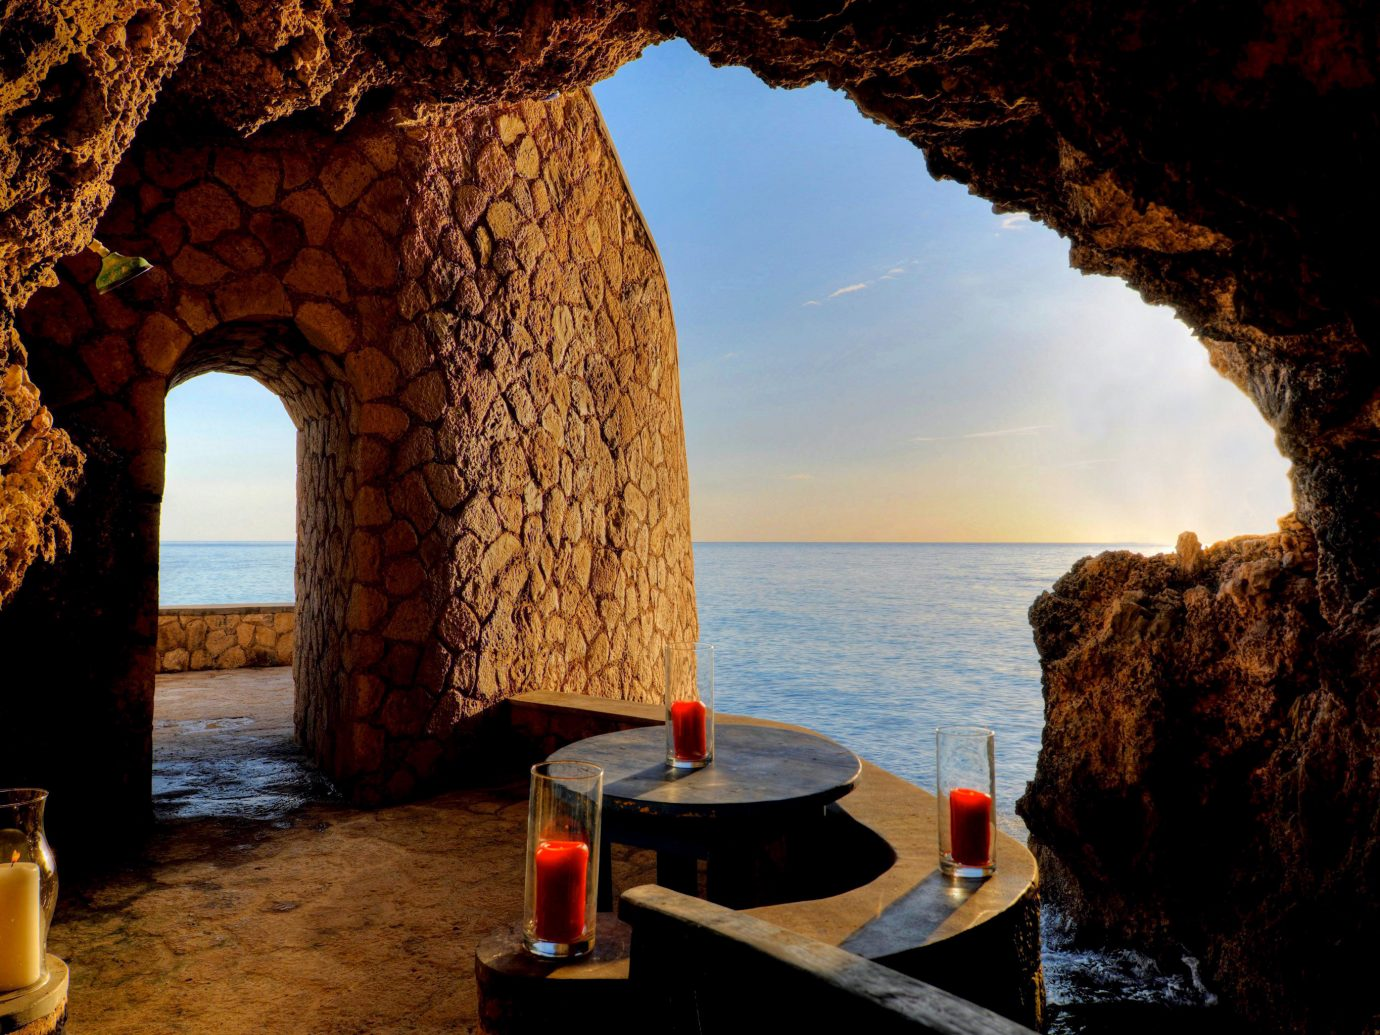 The Caves Hotel - An All Inclusive Luxury Beach Resort In Negril, Jamaica